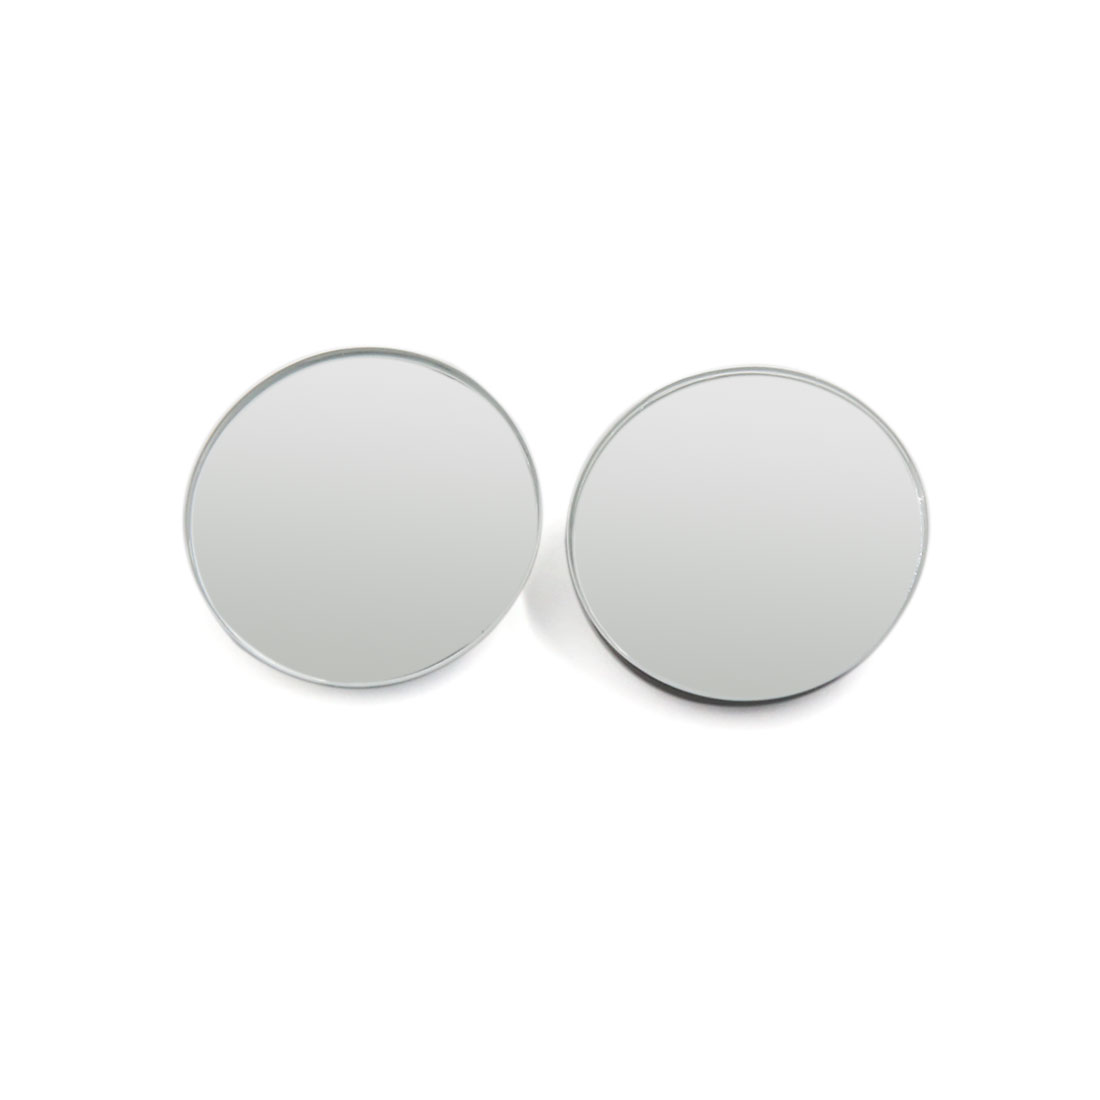 40mm Dia Round Car Exterior Blind Spot Assist Mirros Convex Adhesive Rear View Mirror 2pcs